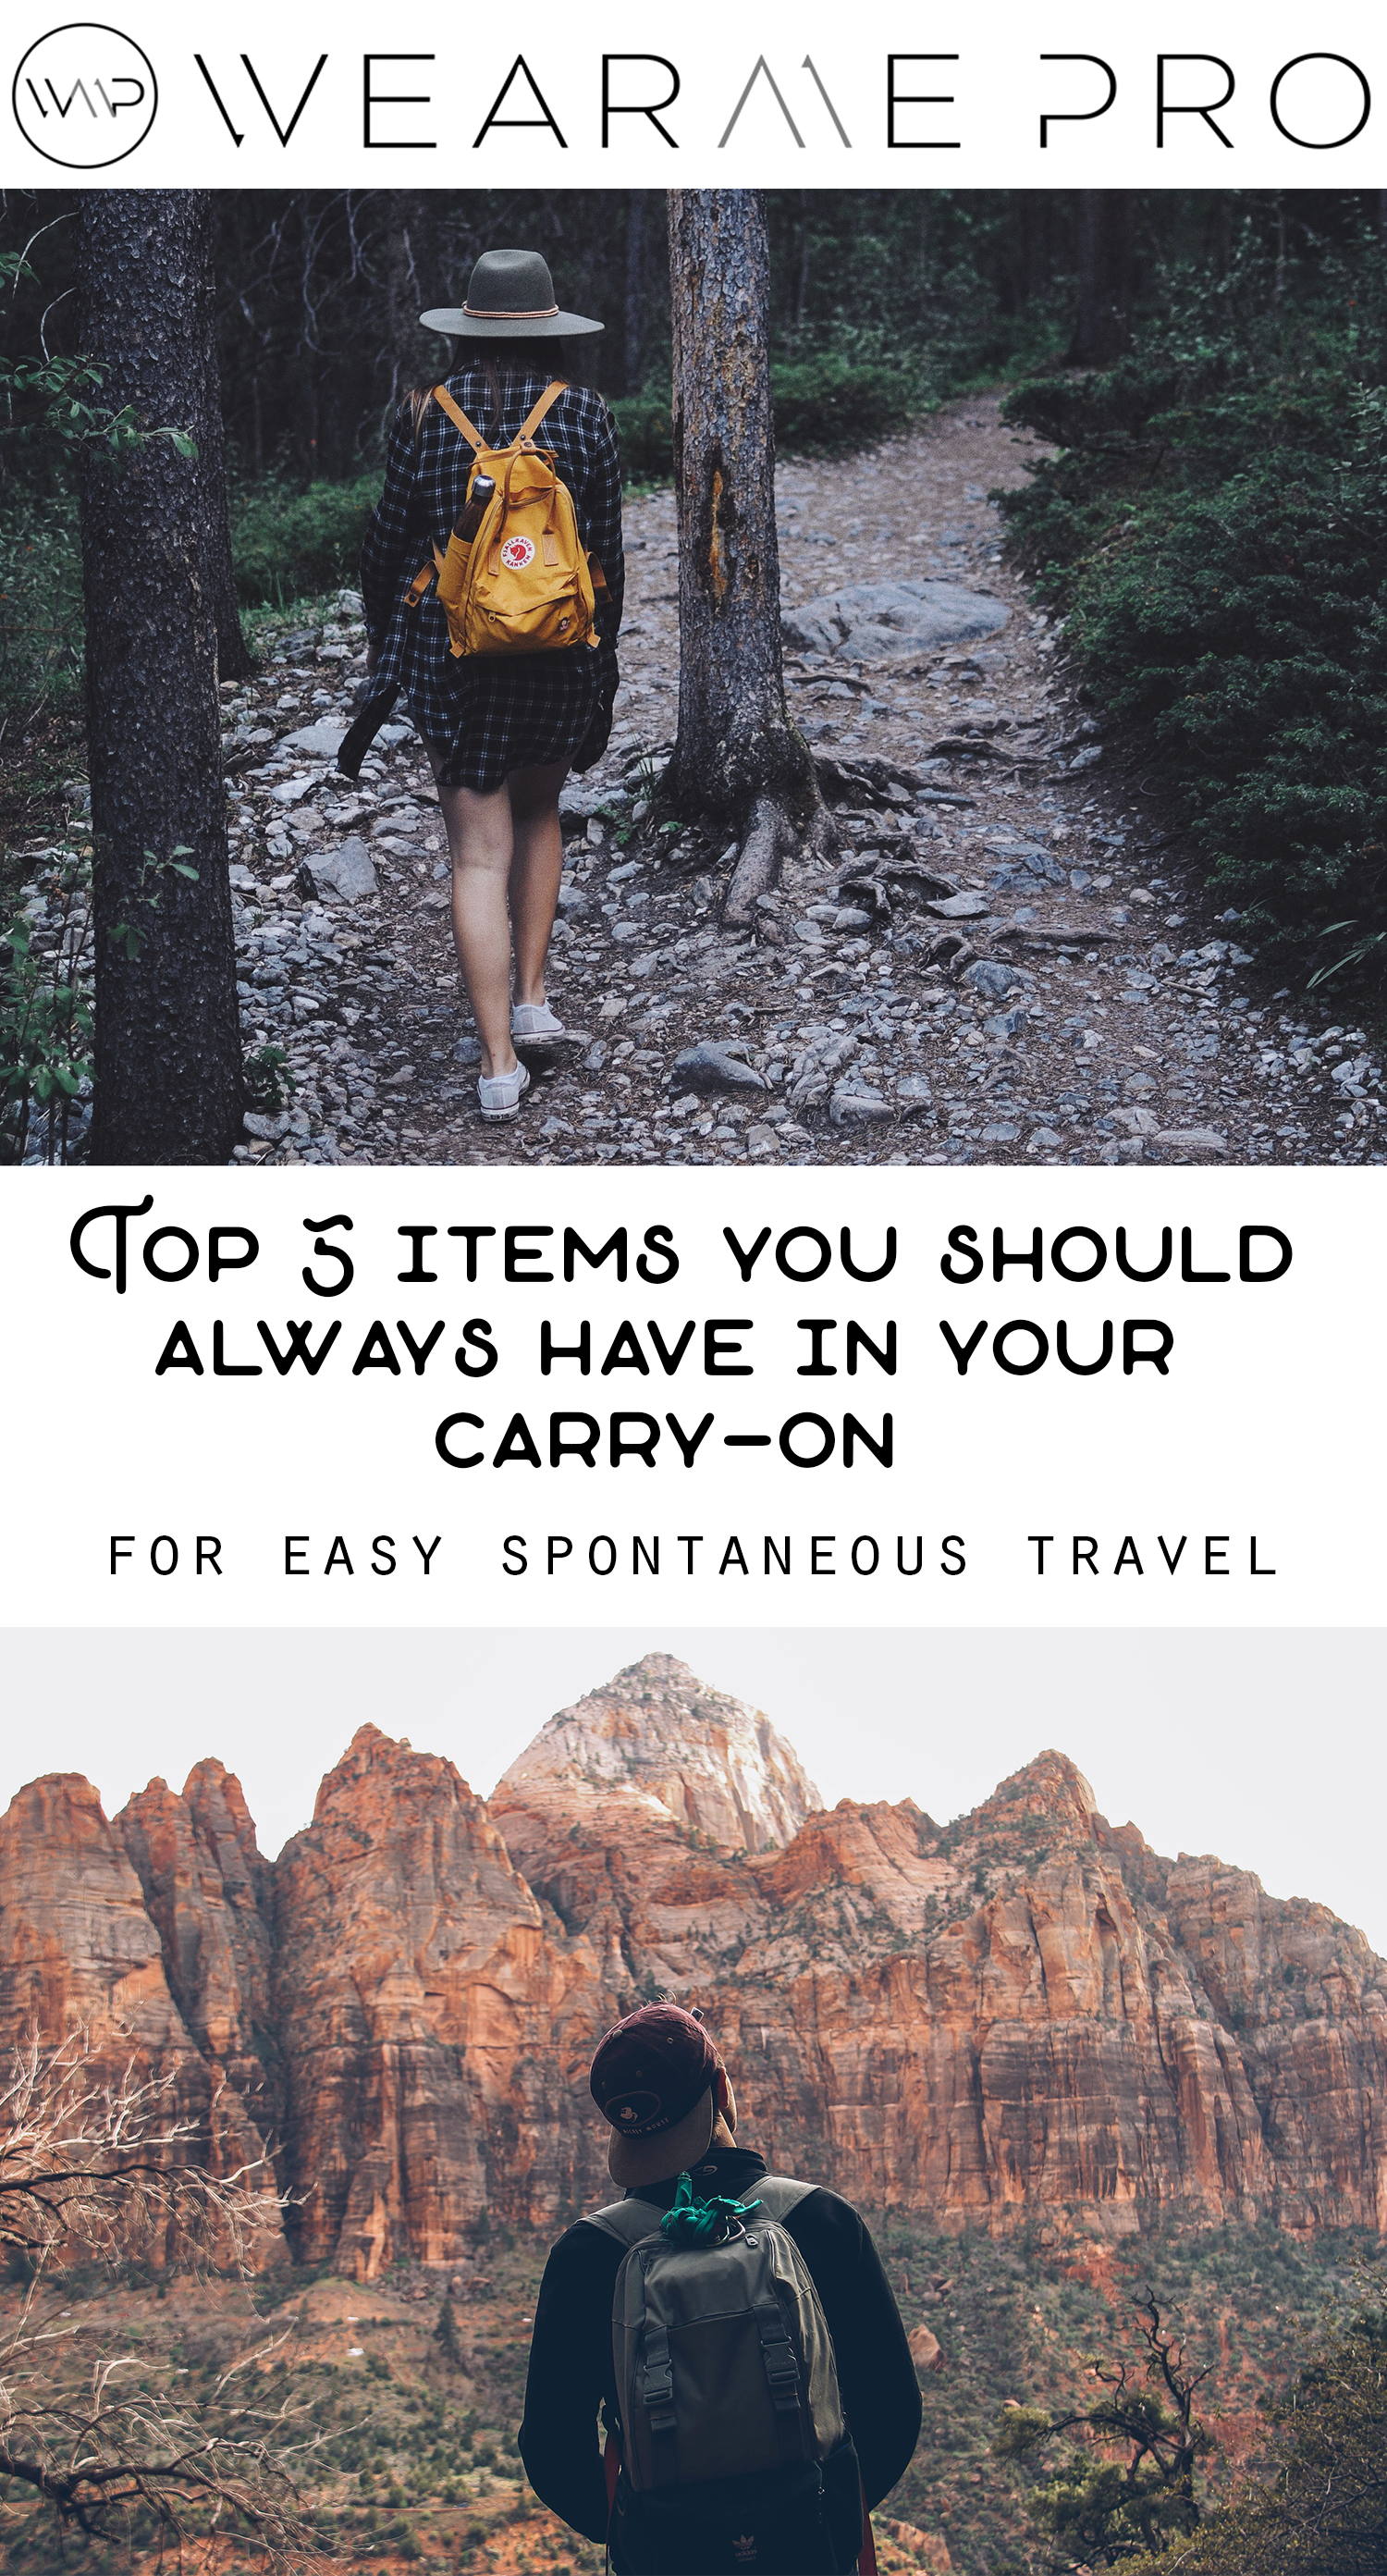 Top 5 Things You Should Always Have in Your Carry-On ...